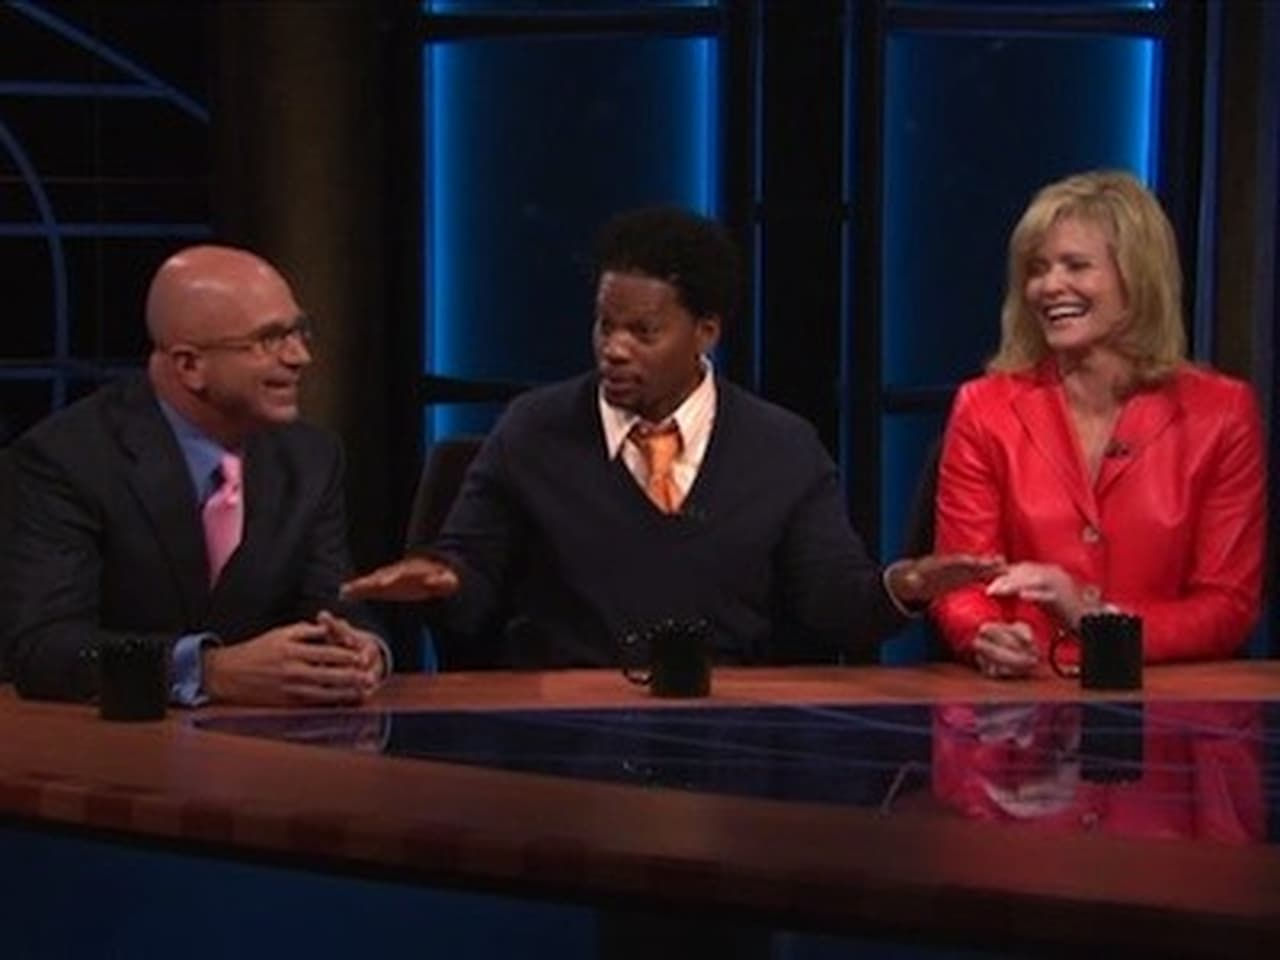 Real Time with Bill Maher - Season 5 Episode 7 : March 30, 2007